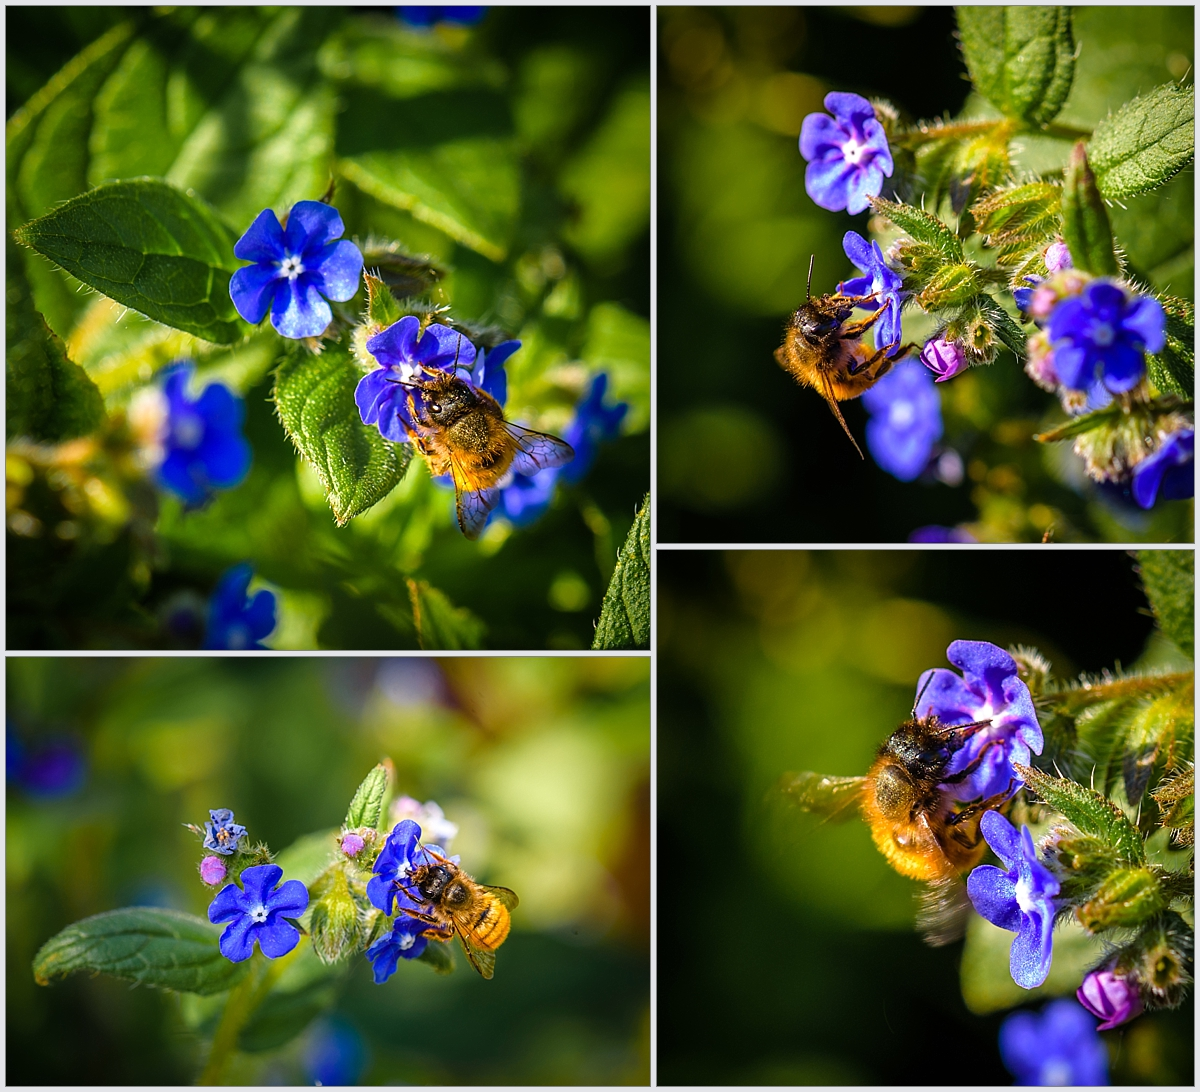 Some close ups of bees feeding on the flowers, it's amazing to pick out the small details in the wings or the hairs. All of these images were captured at an aperture of f9.